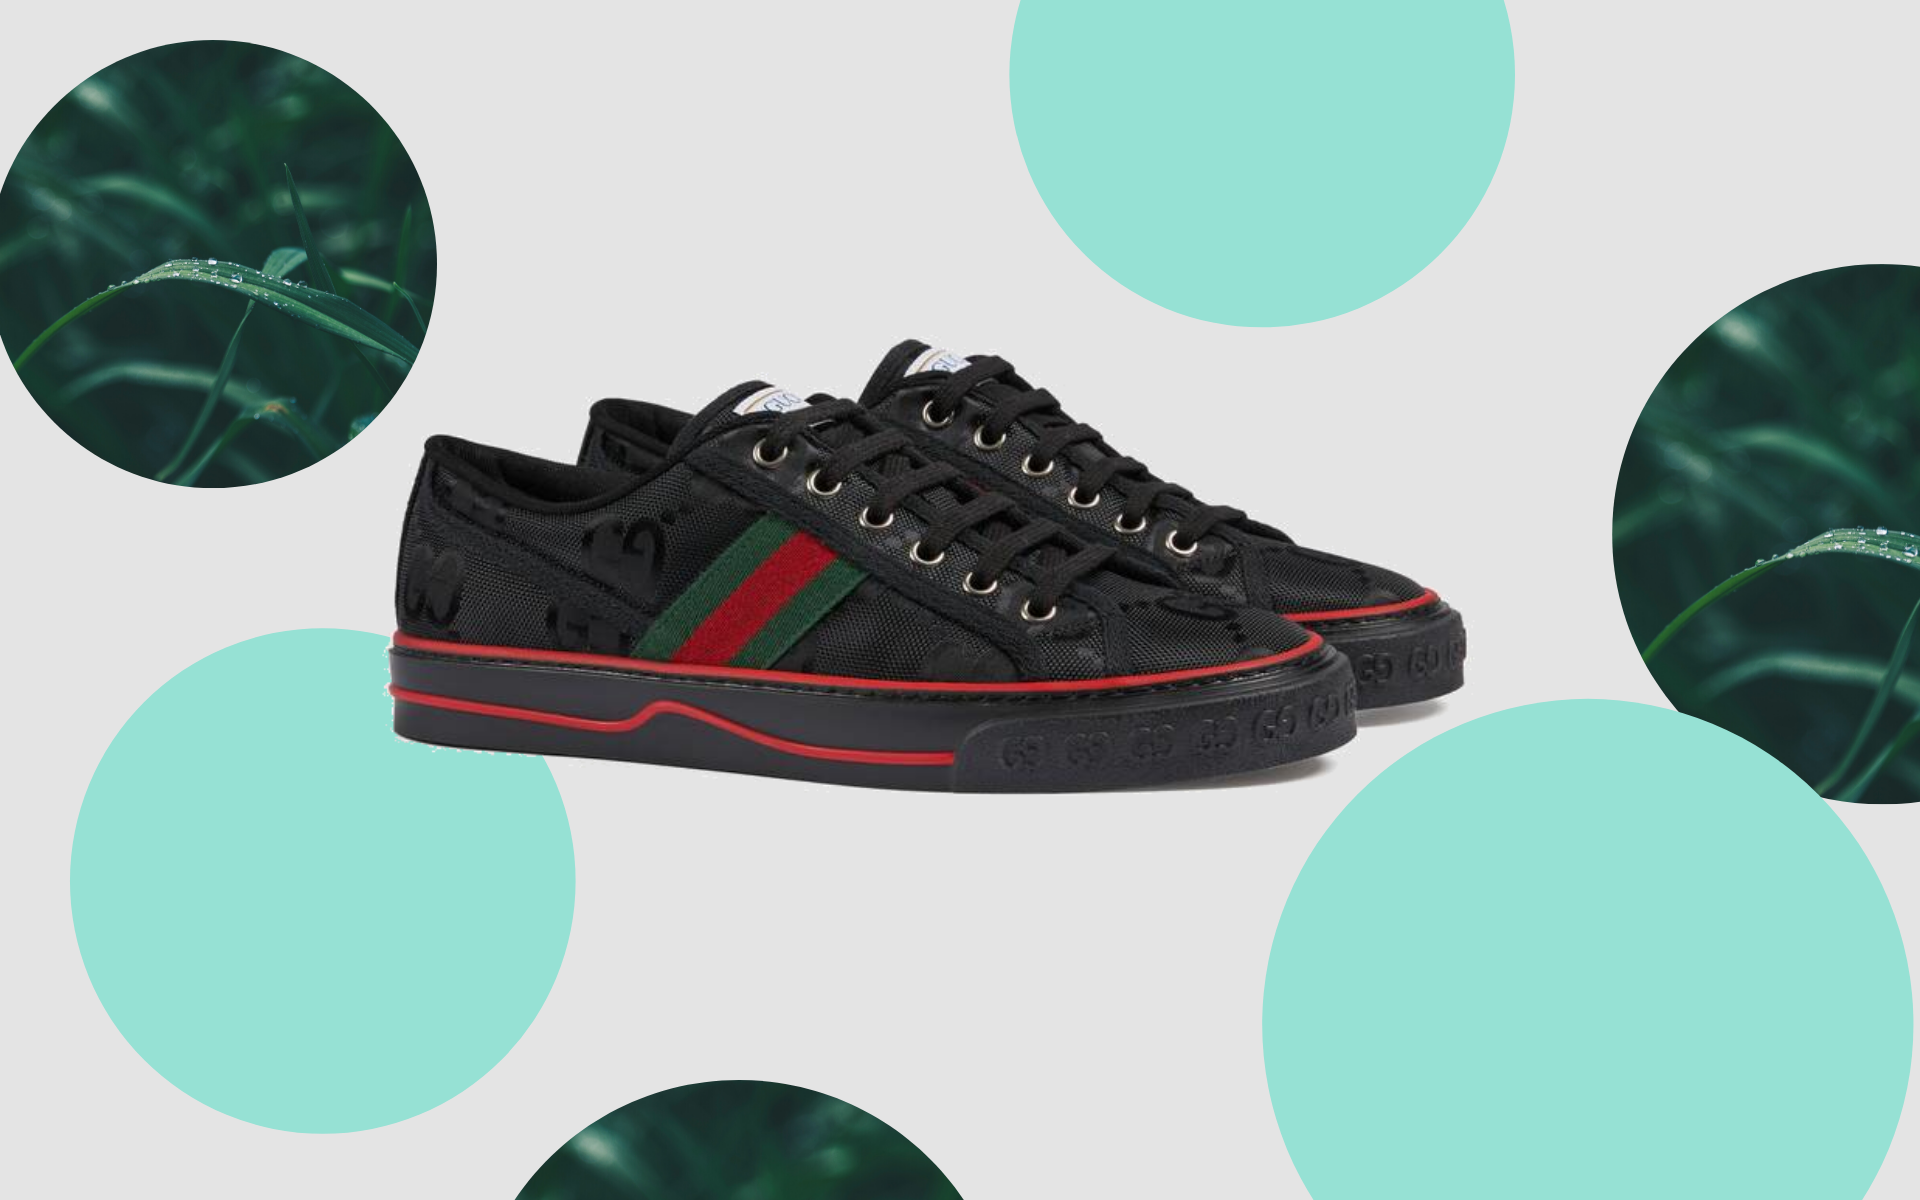 Gucci Sustainable Sneakers Off The Grid - Gucci Vegan Sneakers